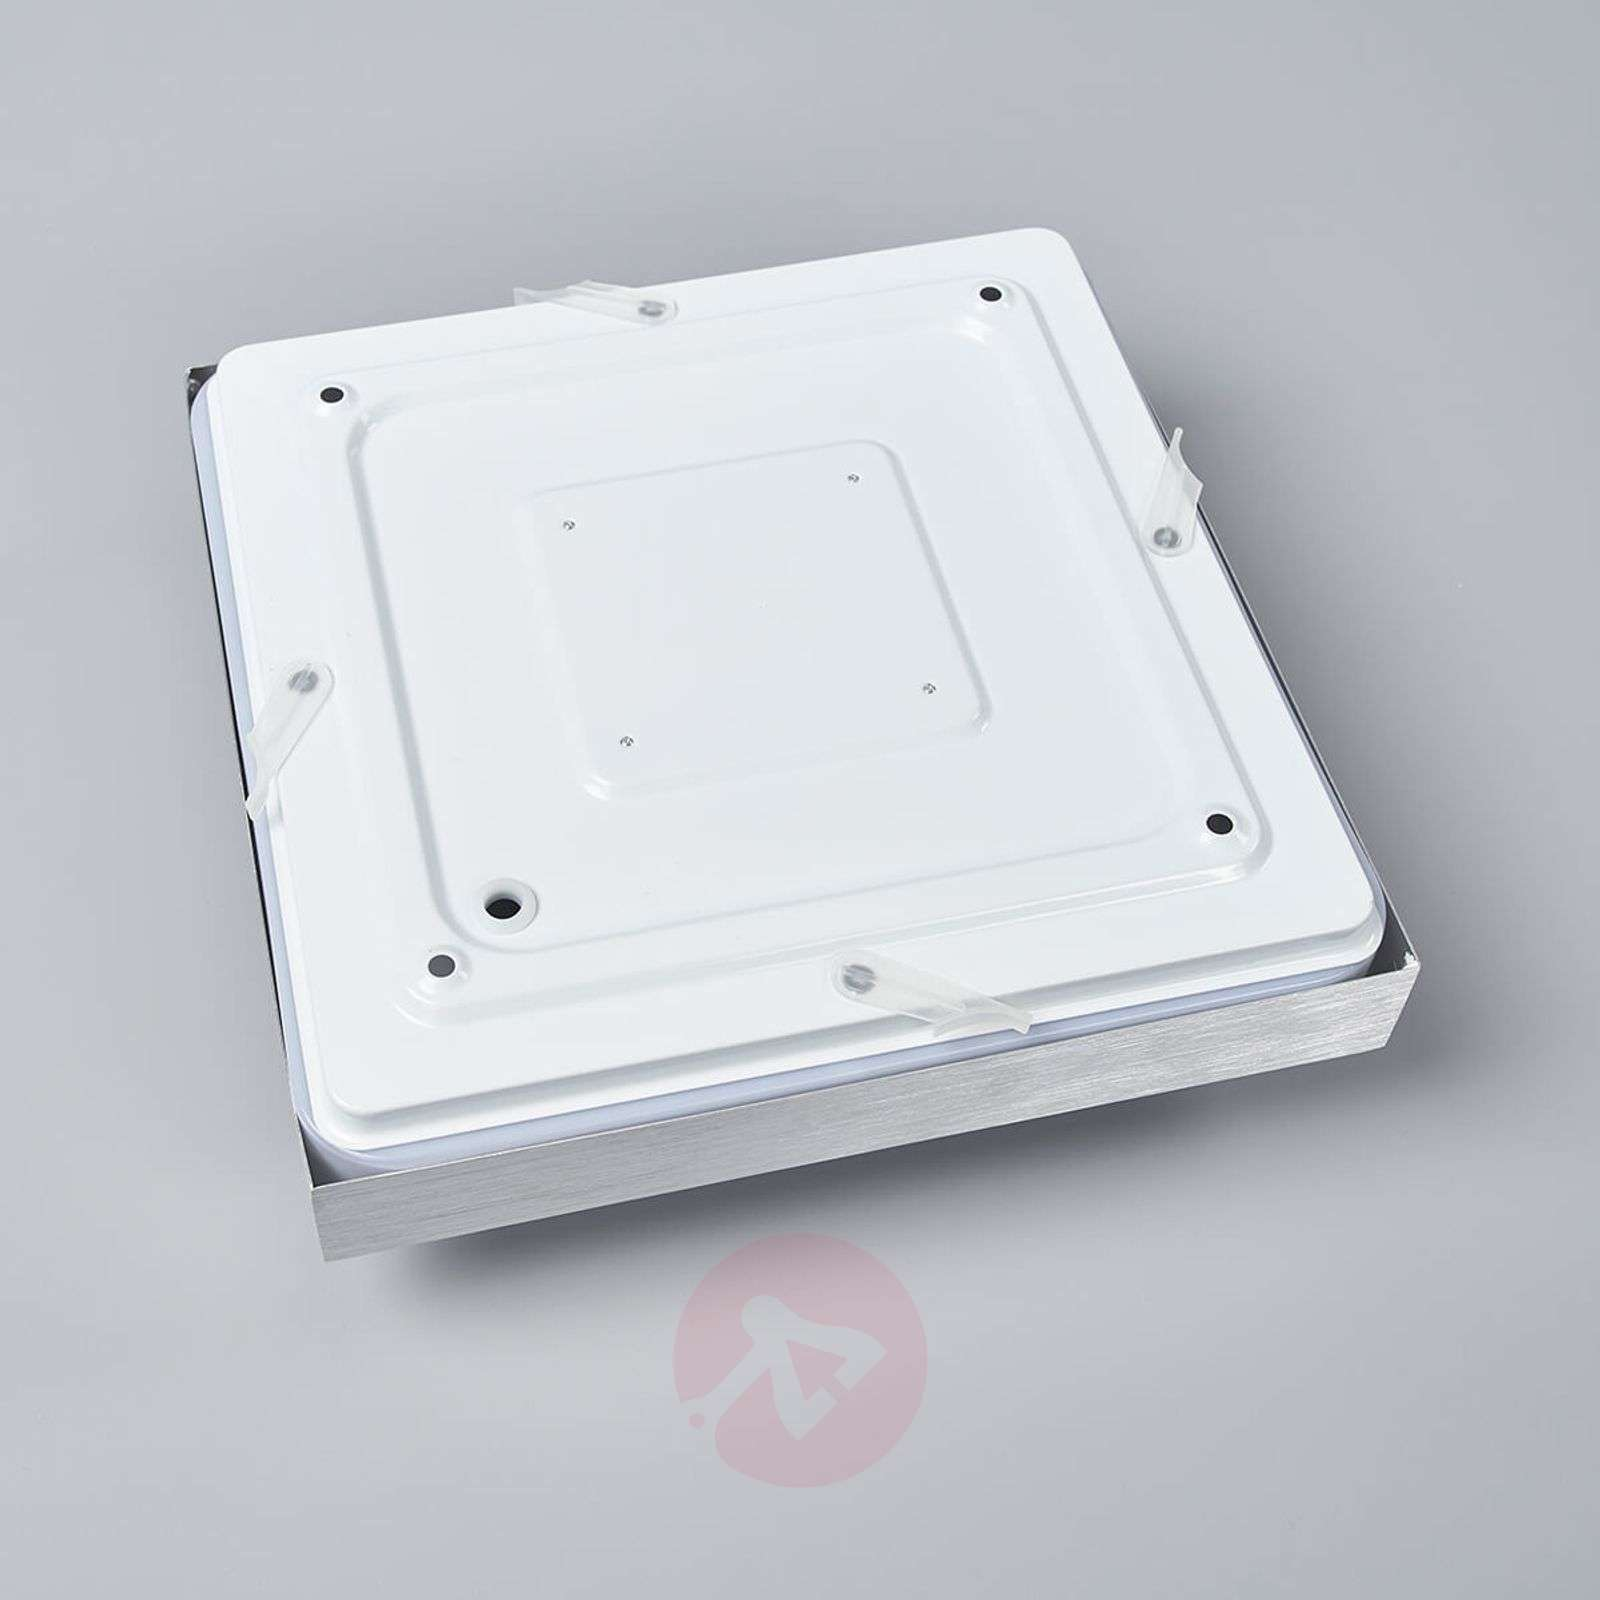 Two-tier LED ceiling lamp Huberta-9974014-01